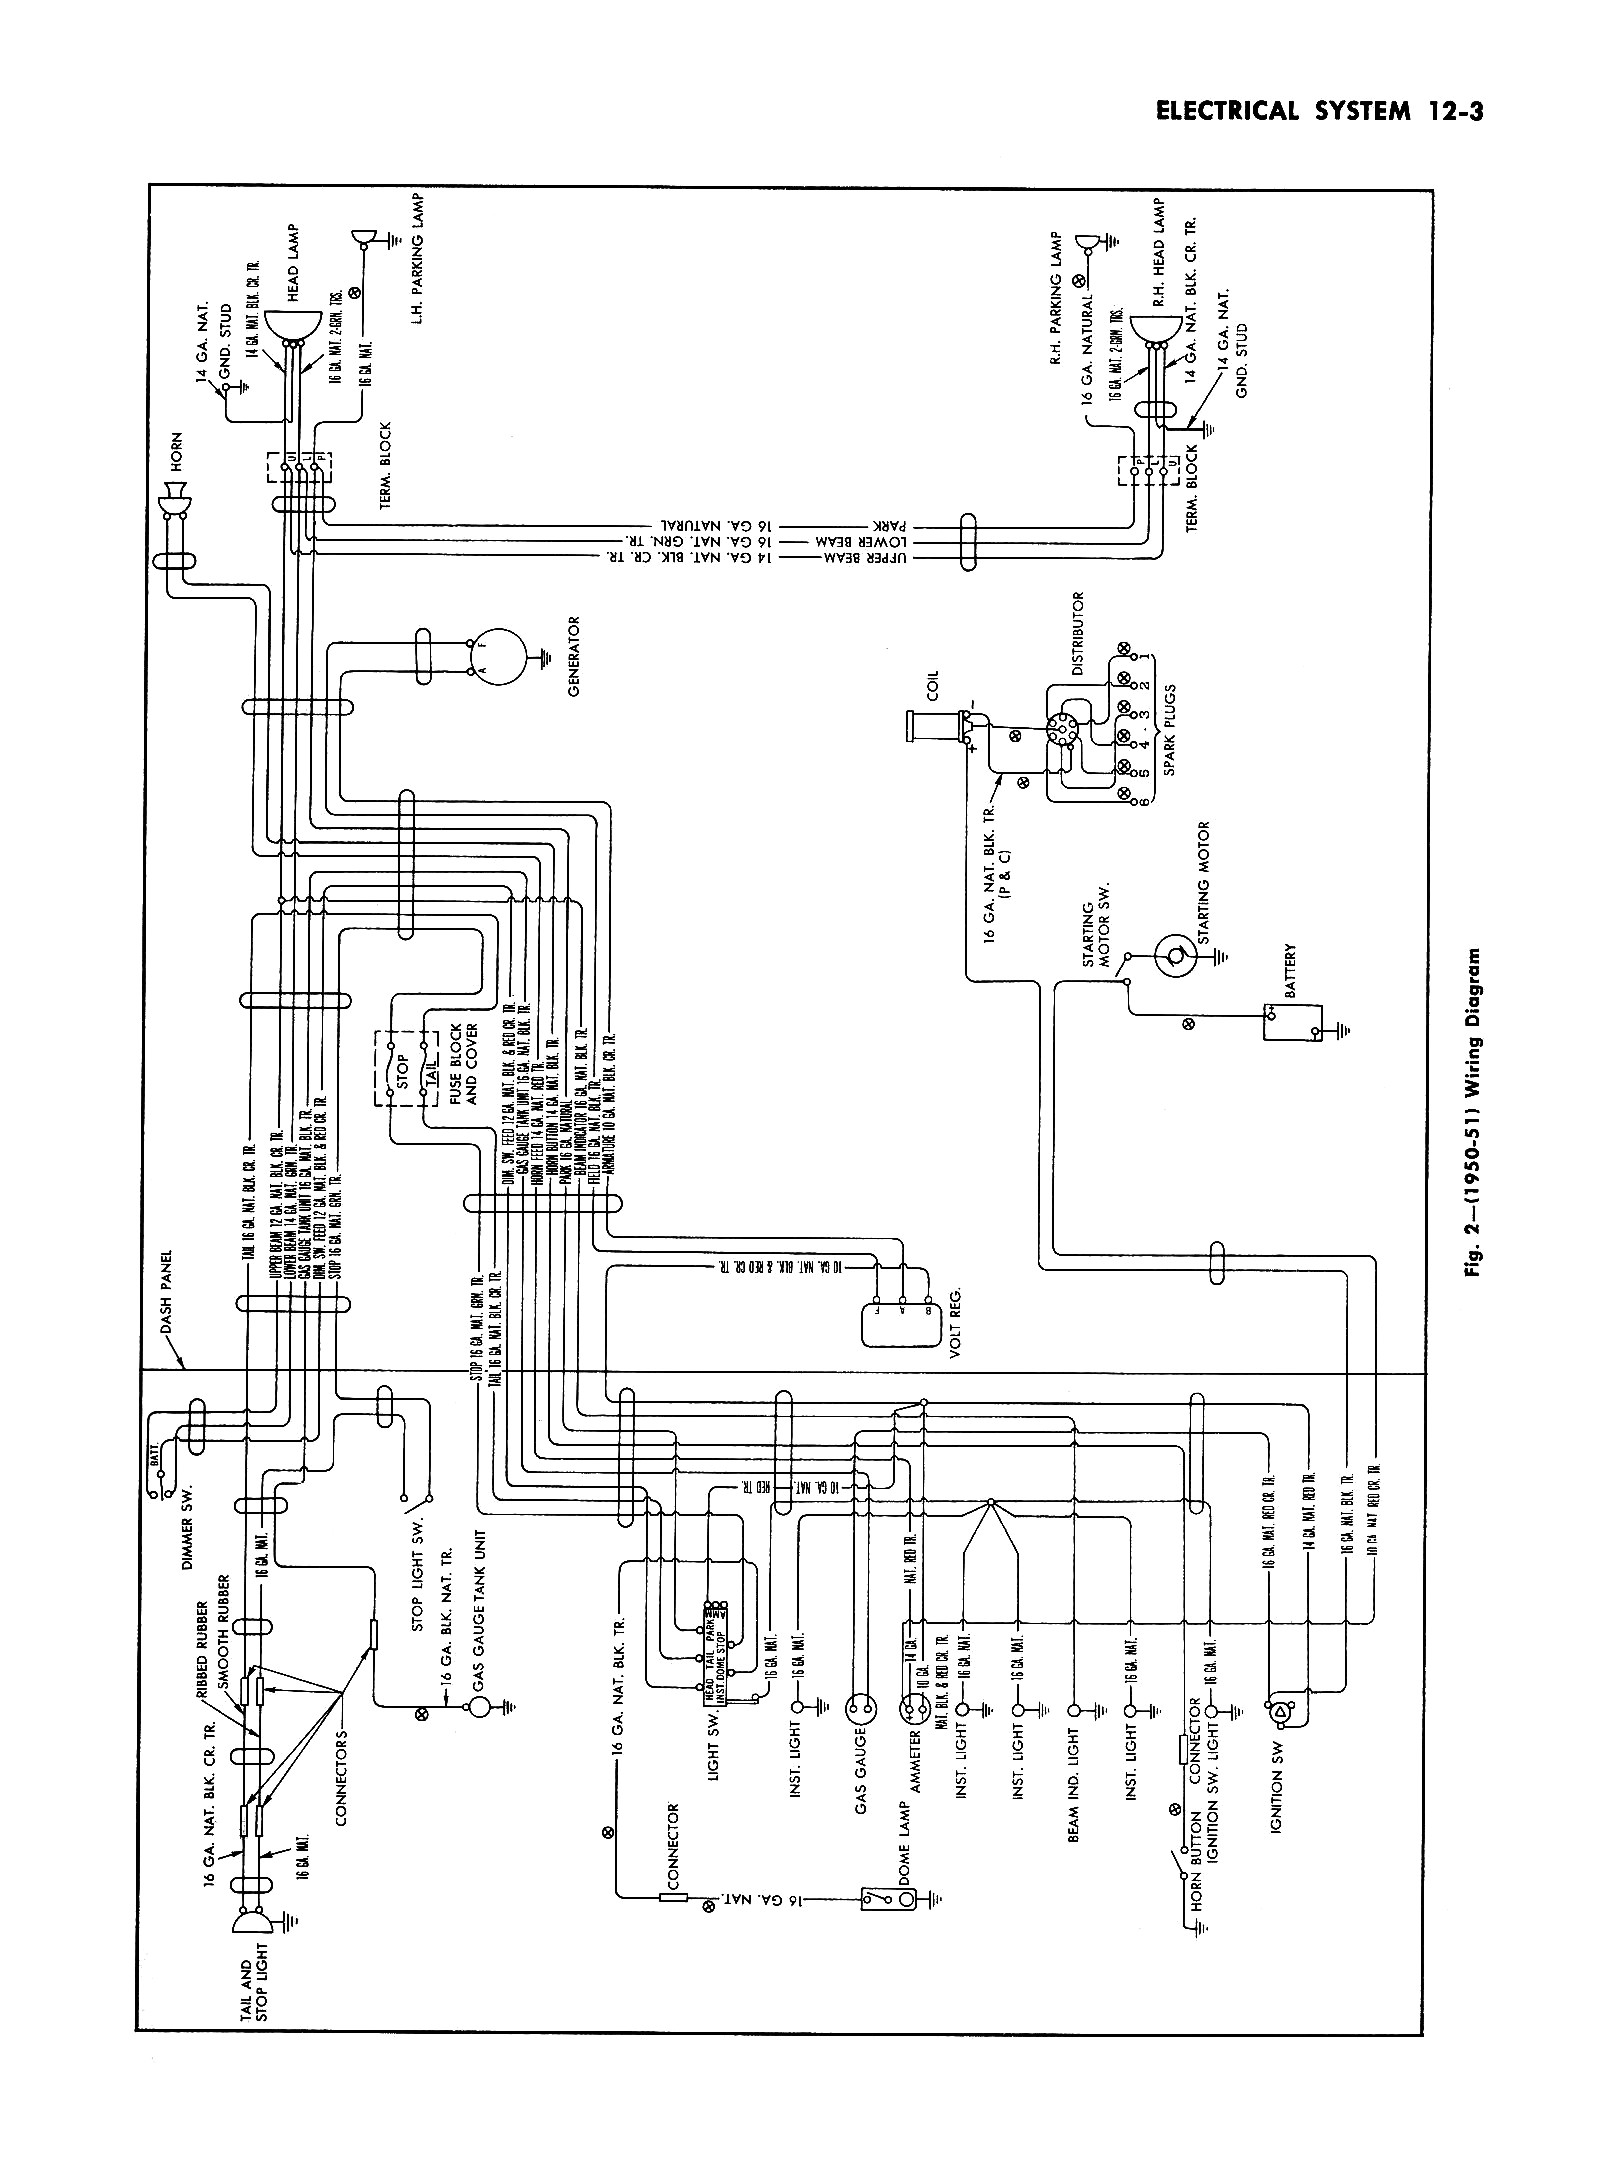 Ne Mercury Wiring Diagram Download Diagram